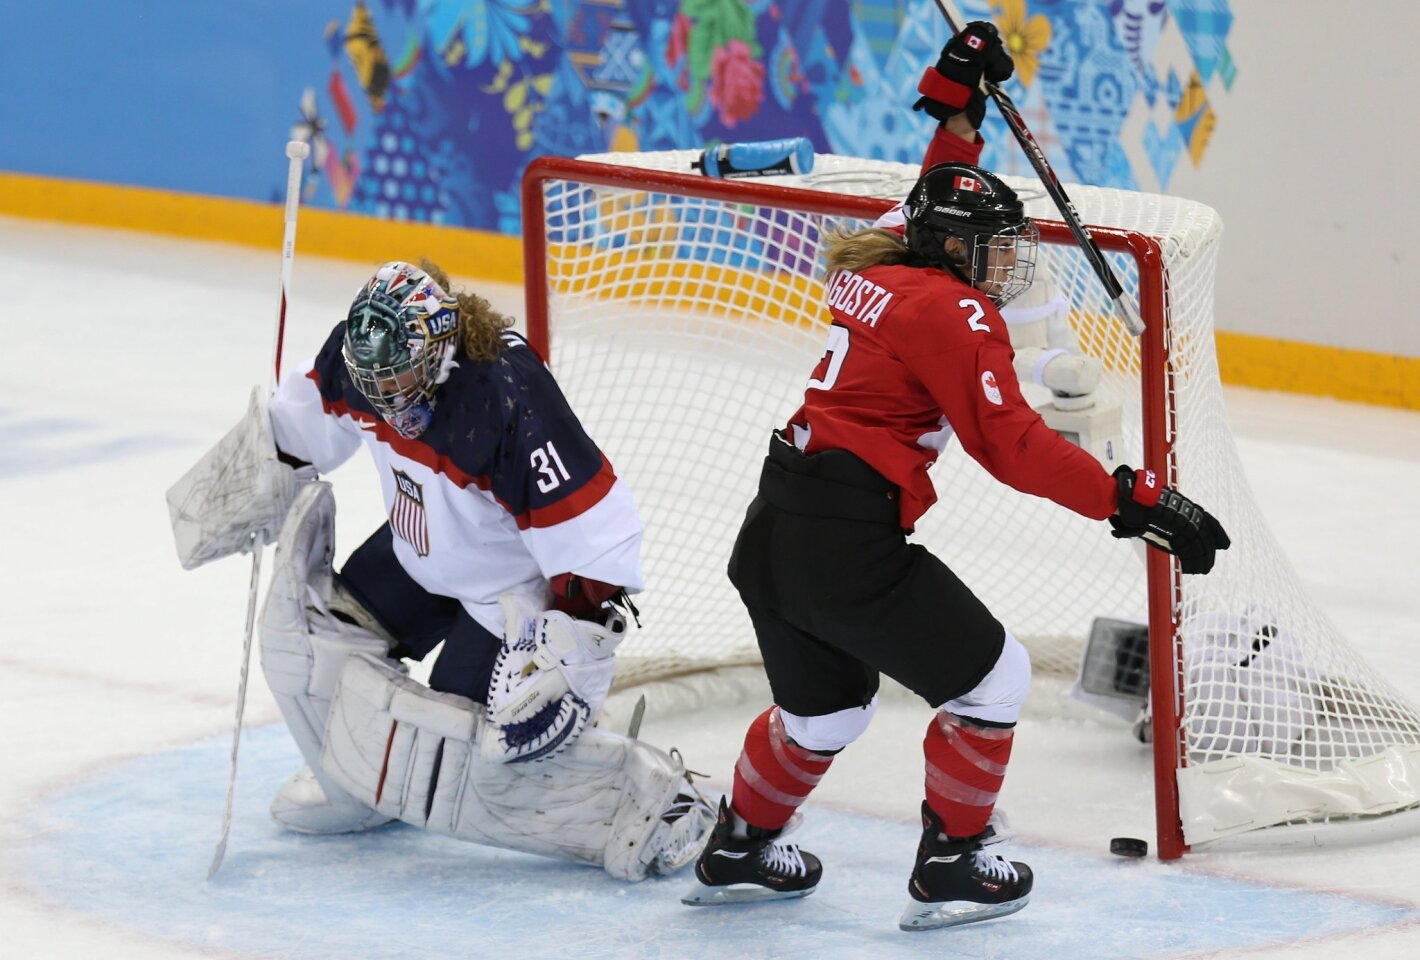 U.S.A. vs. Canada Women's Hockey